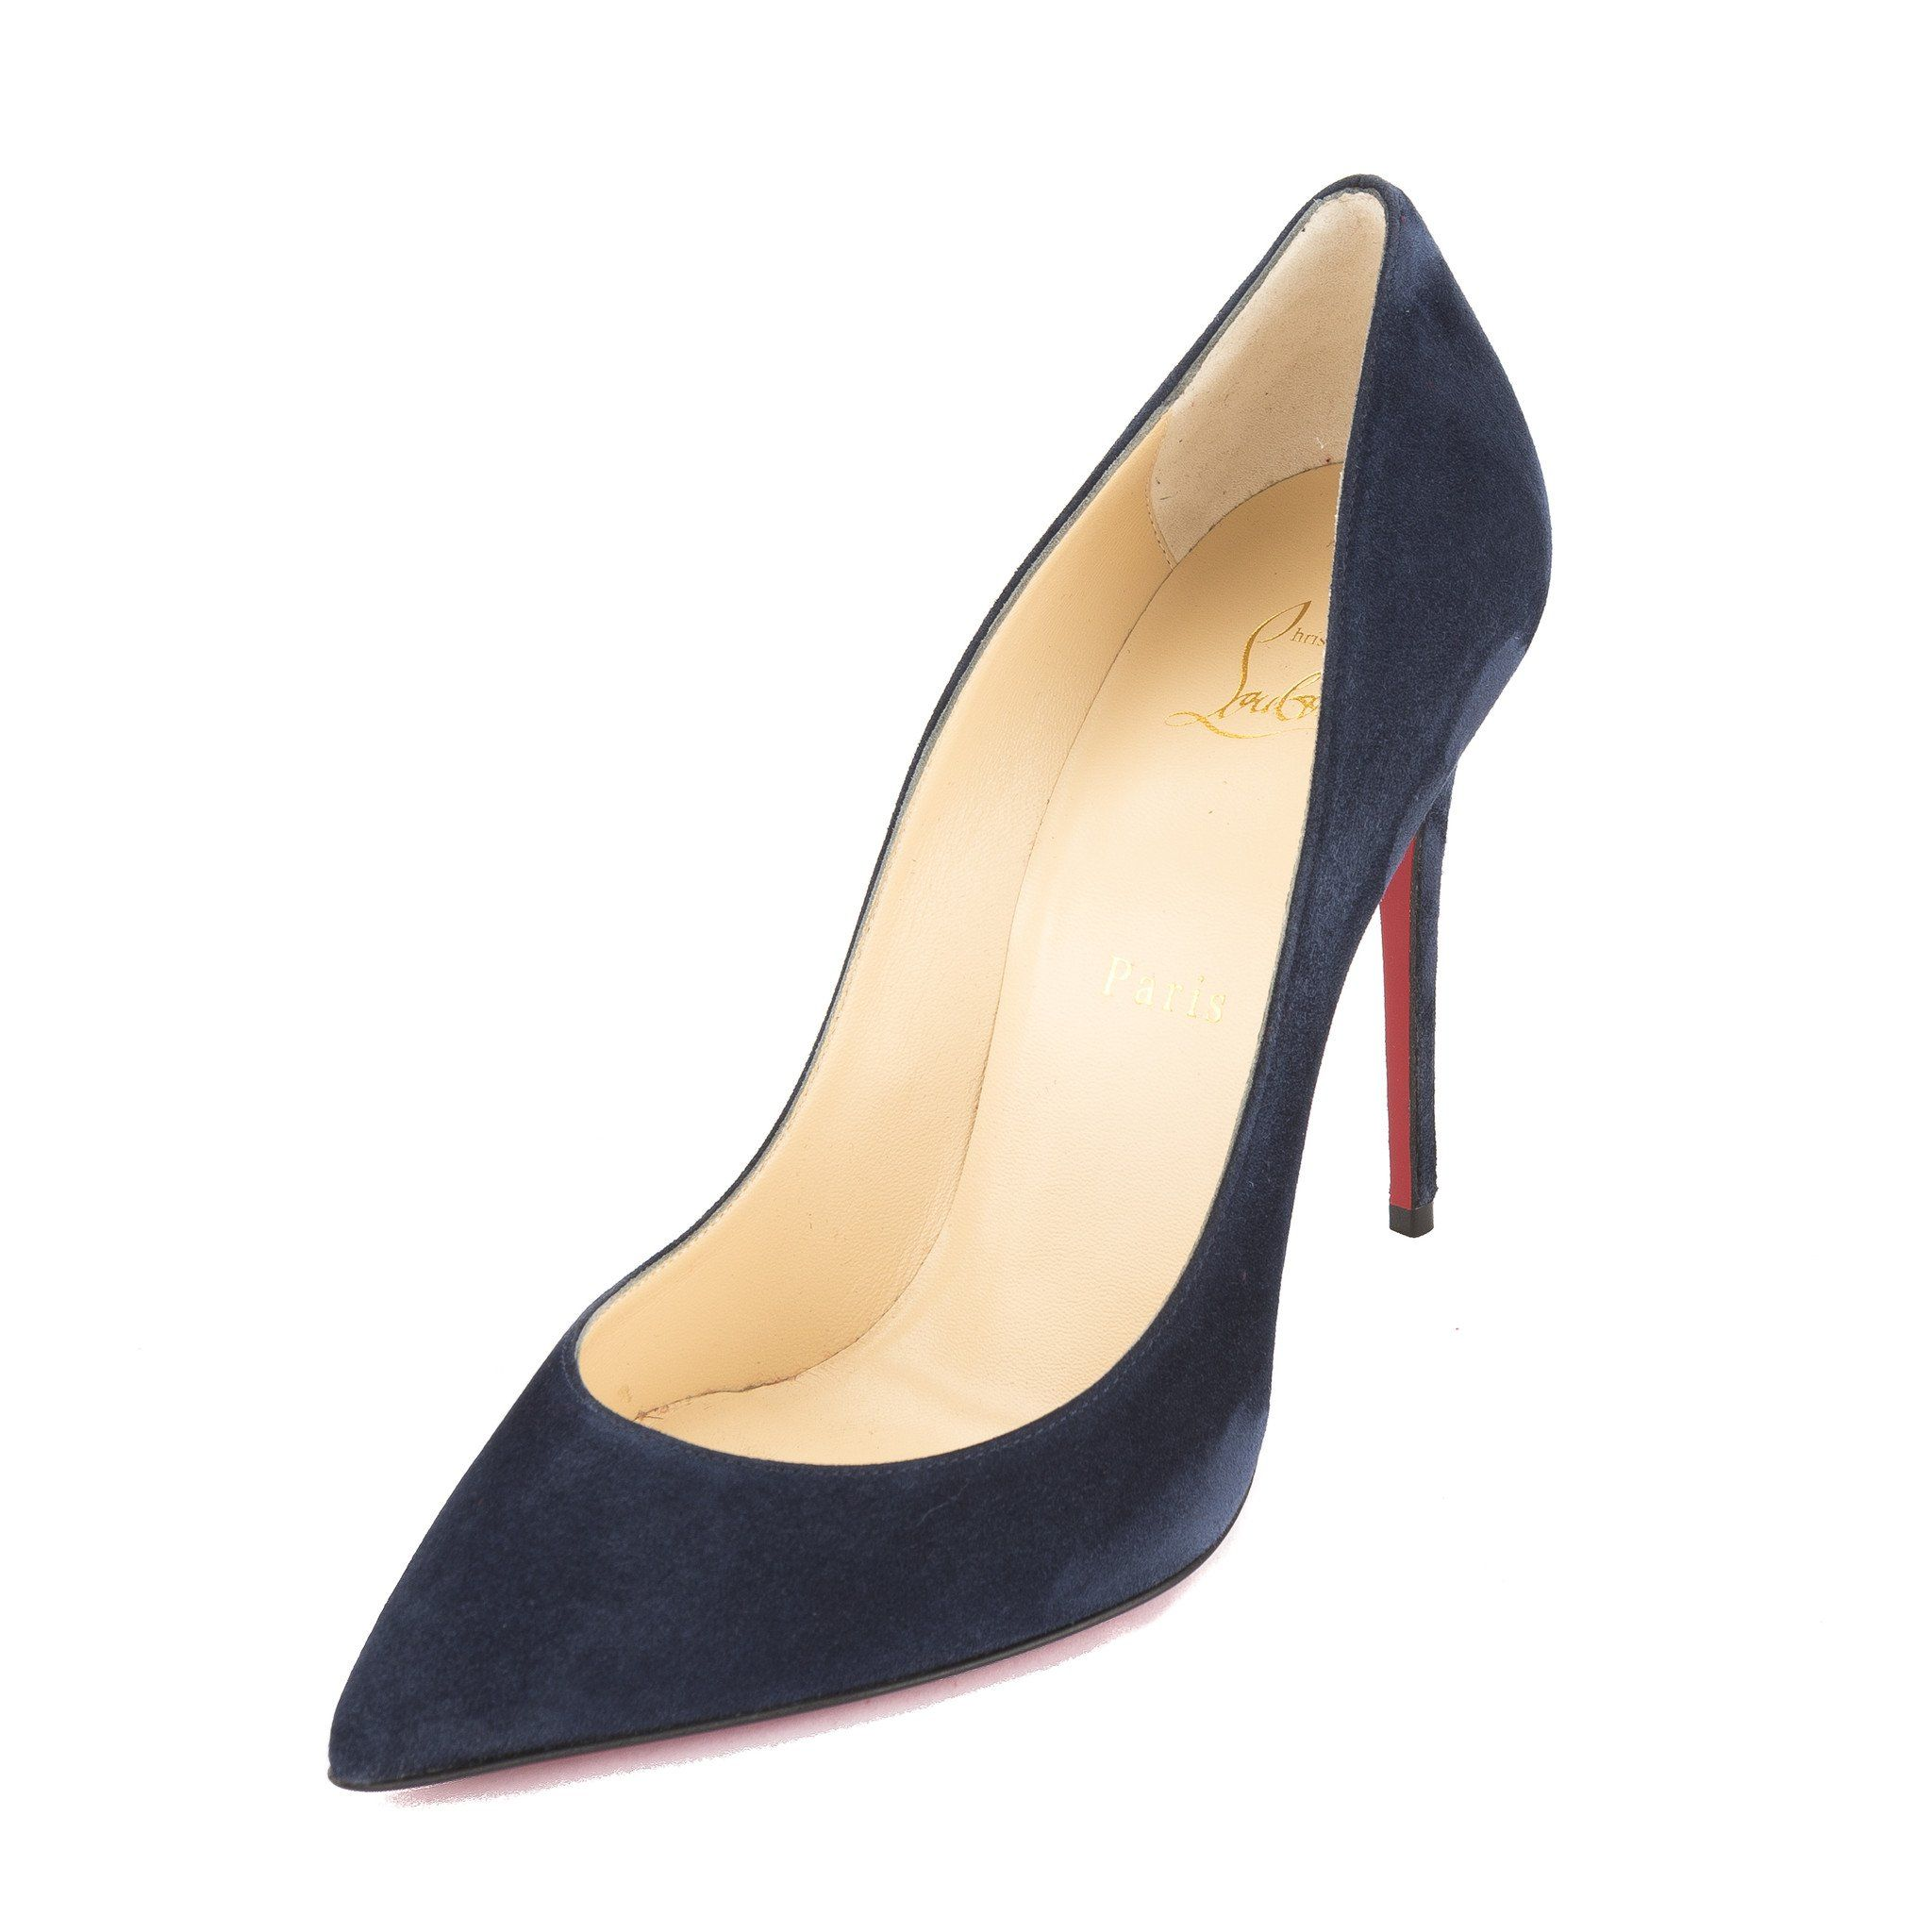 6c27cdd24ac7 Christian Louboutin Velour Blue Suede Pigalle Follies 100mm Pump (New with  Tags)